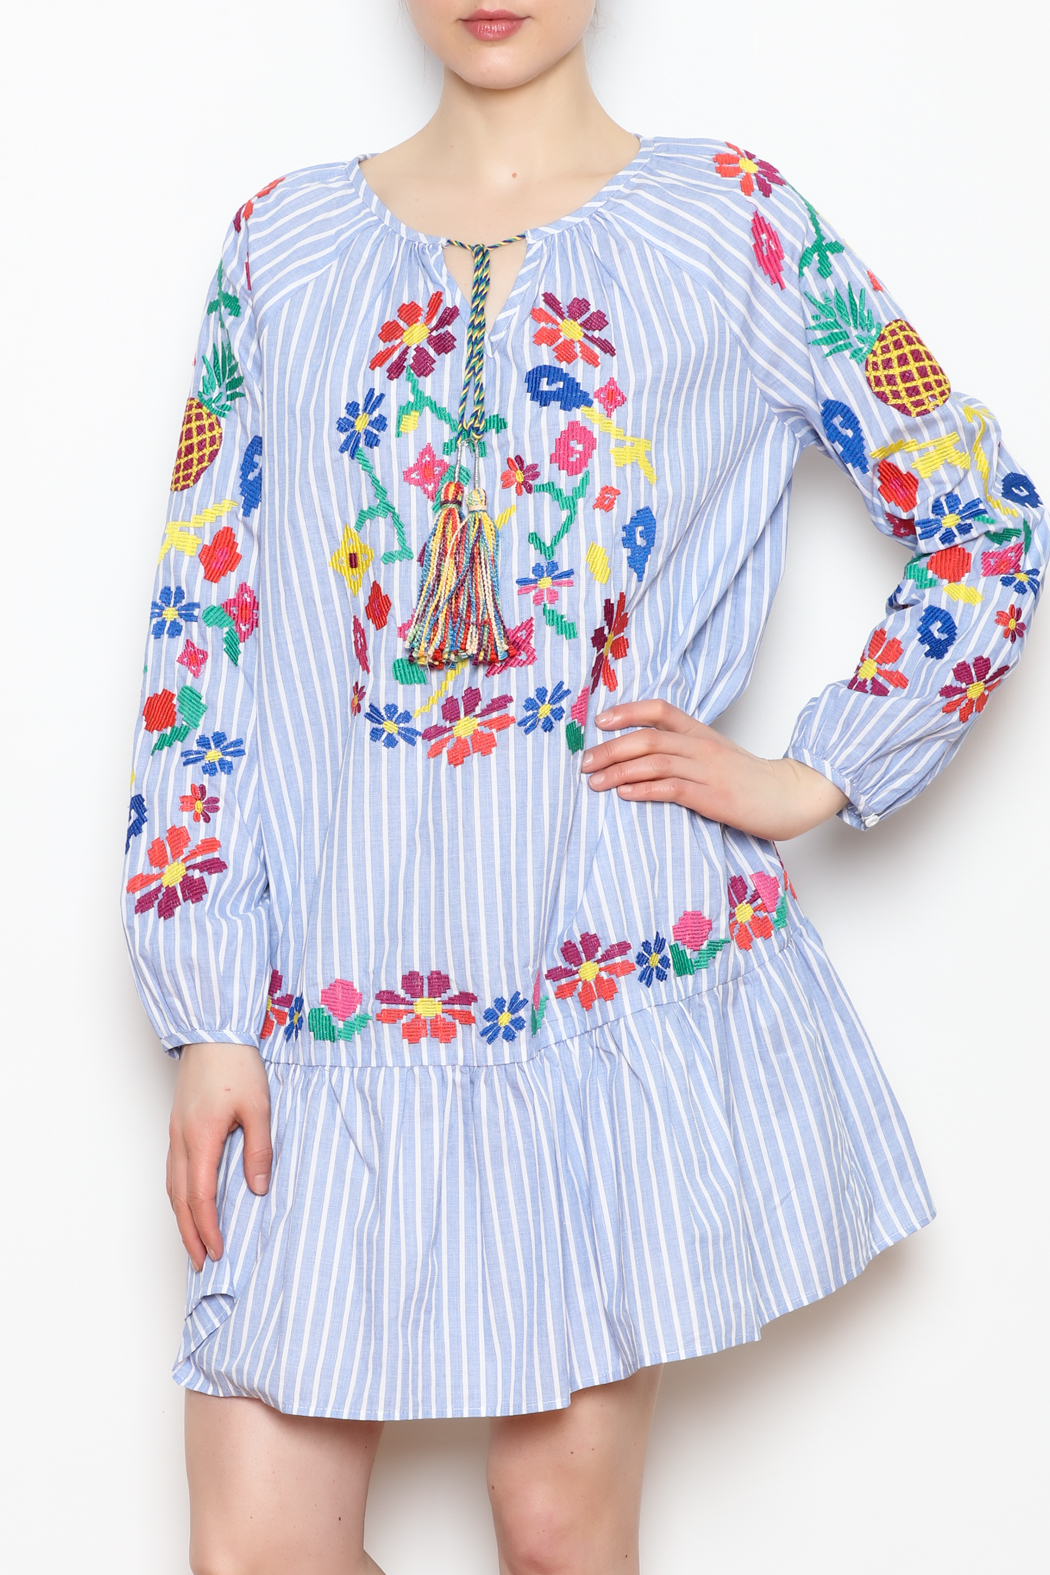 Skies Are Blue Embroidered Detail Dress - Main Image